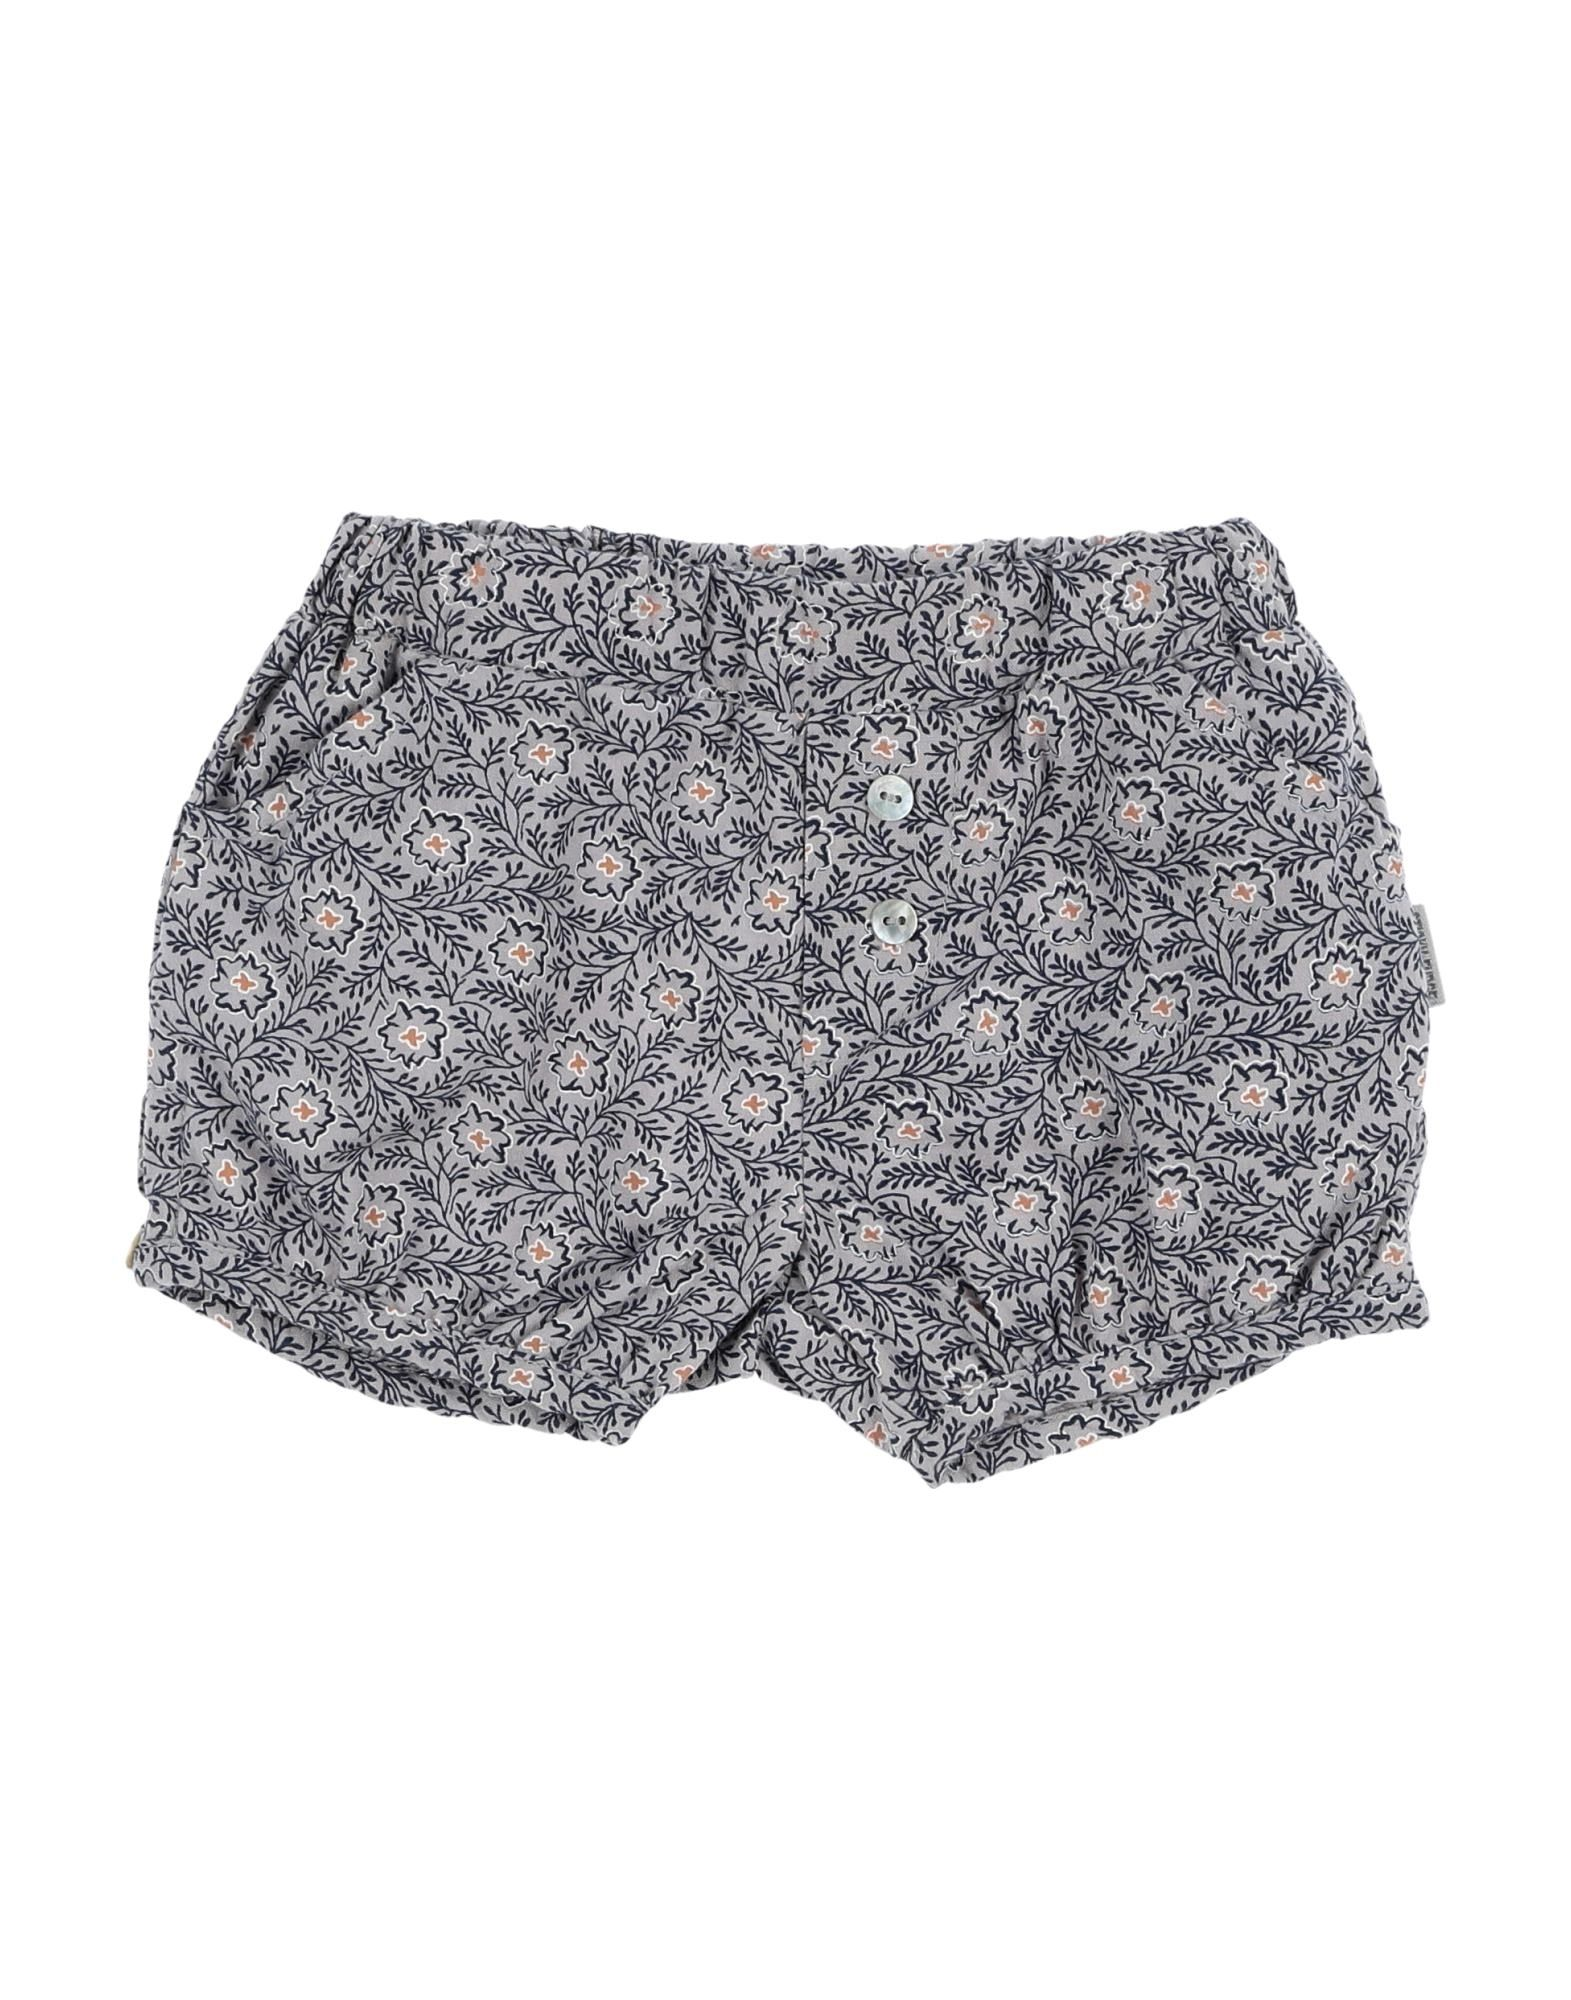 Sticky Fudge Kids' Shorts In Gray